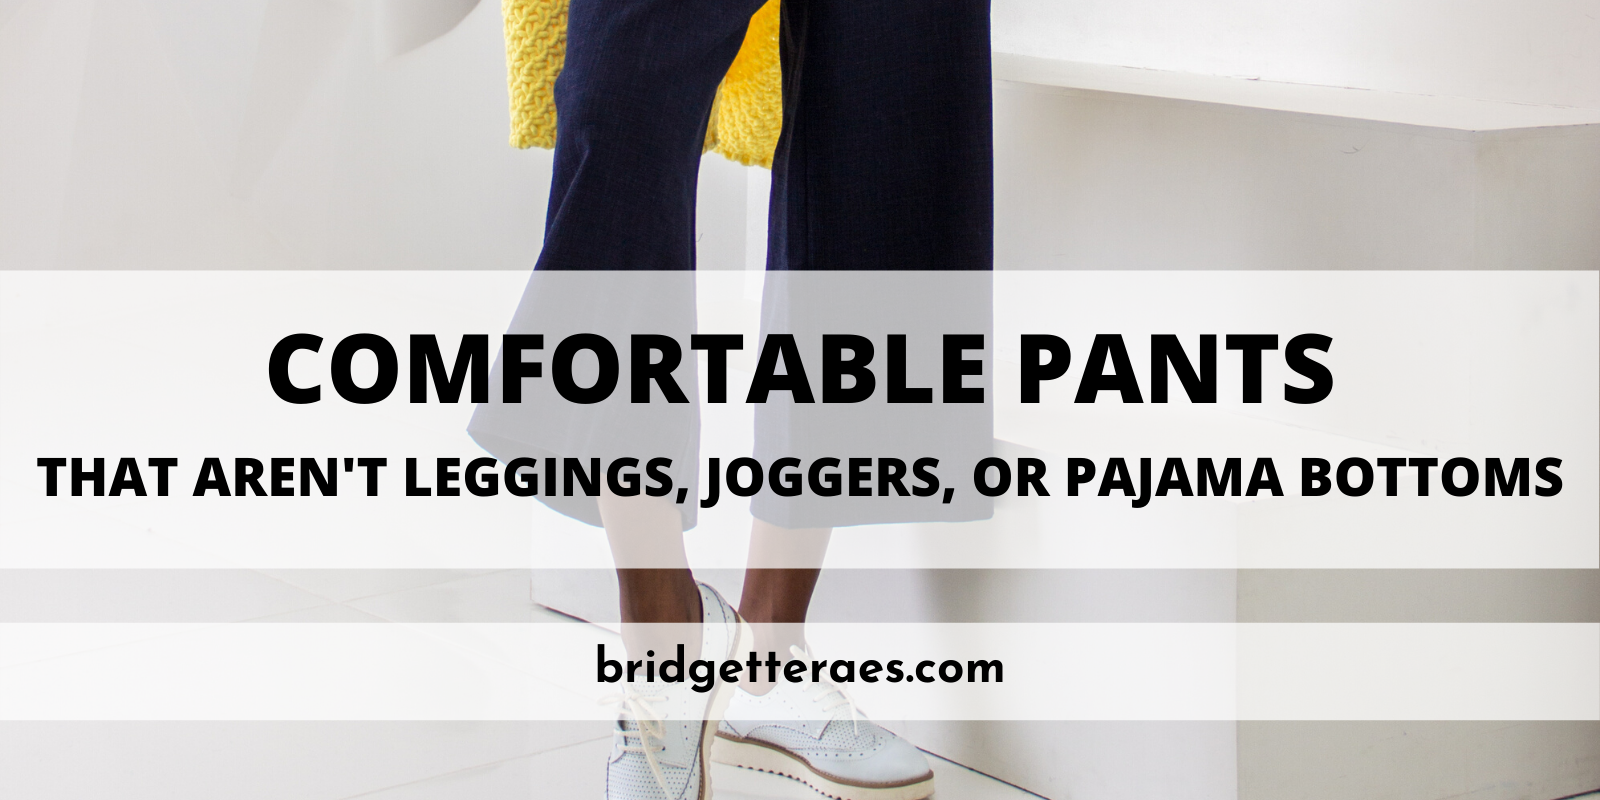 Comfortable Pants that aren't Leggings, Joggers, or Pajama Bottoms